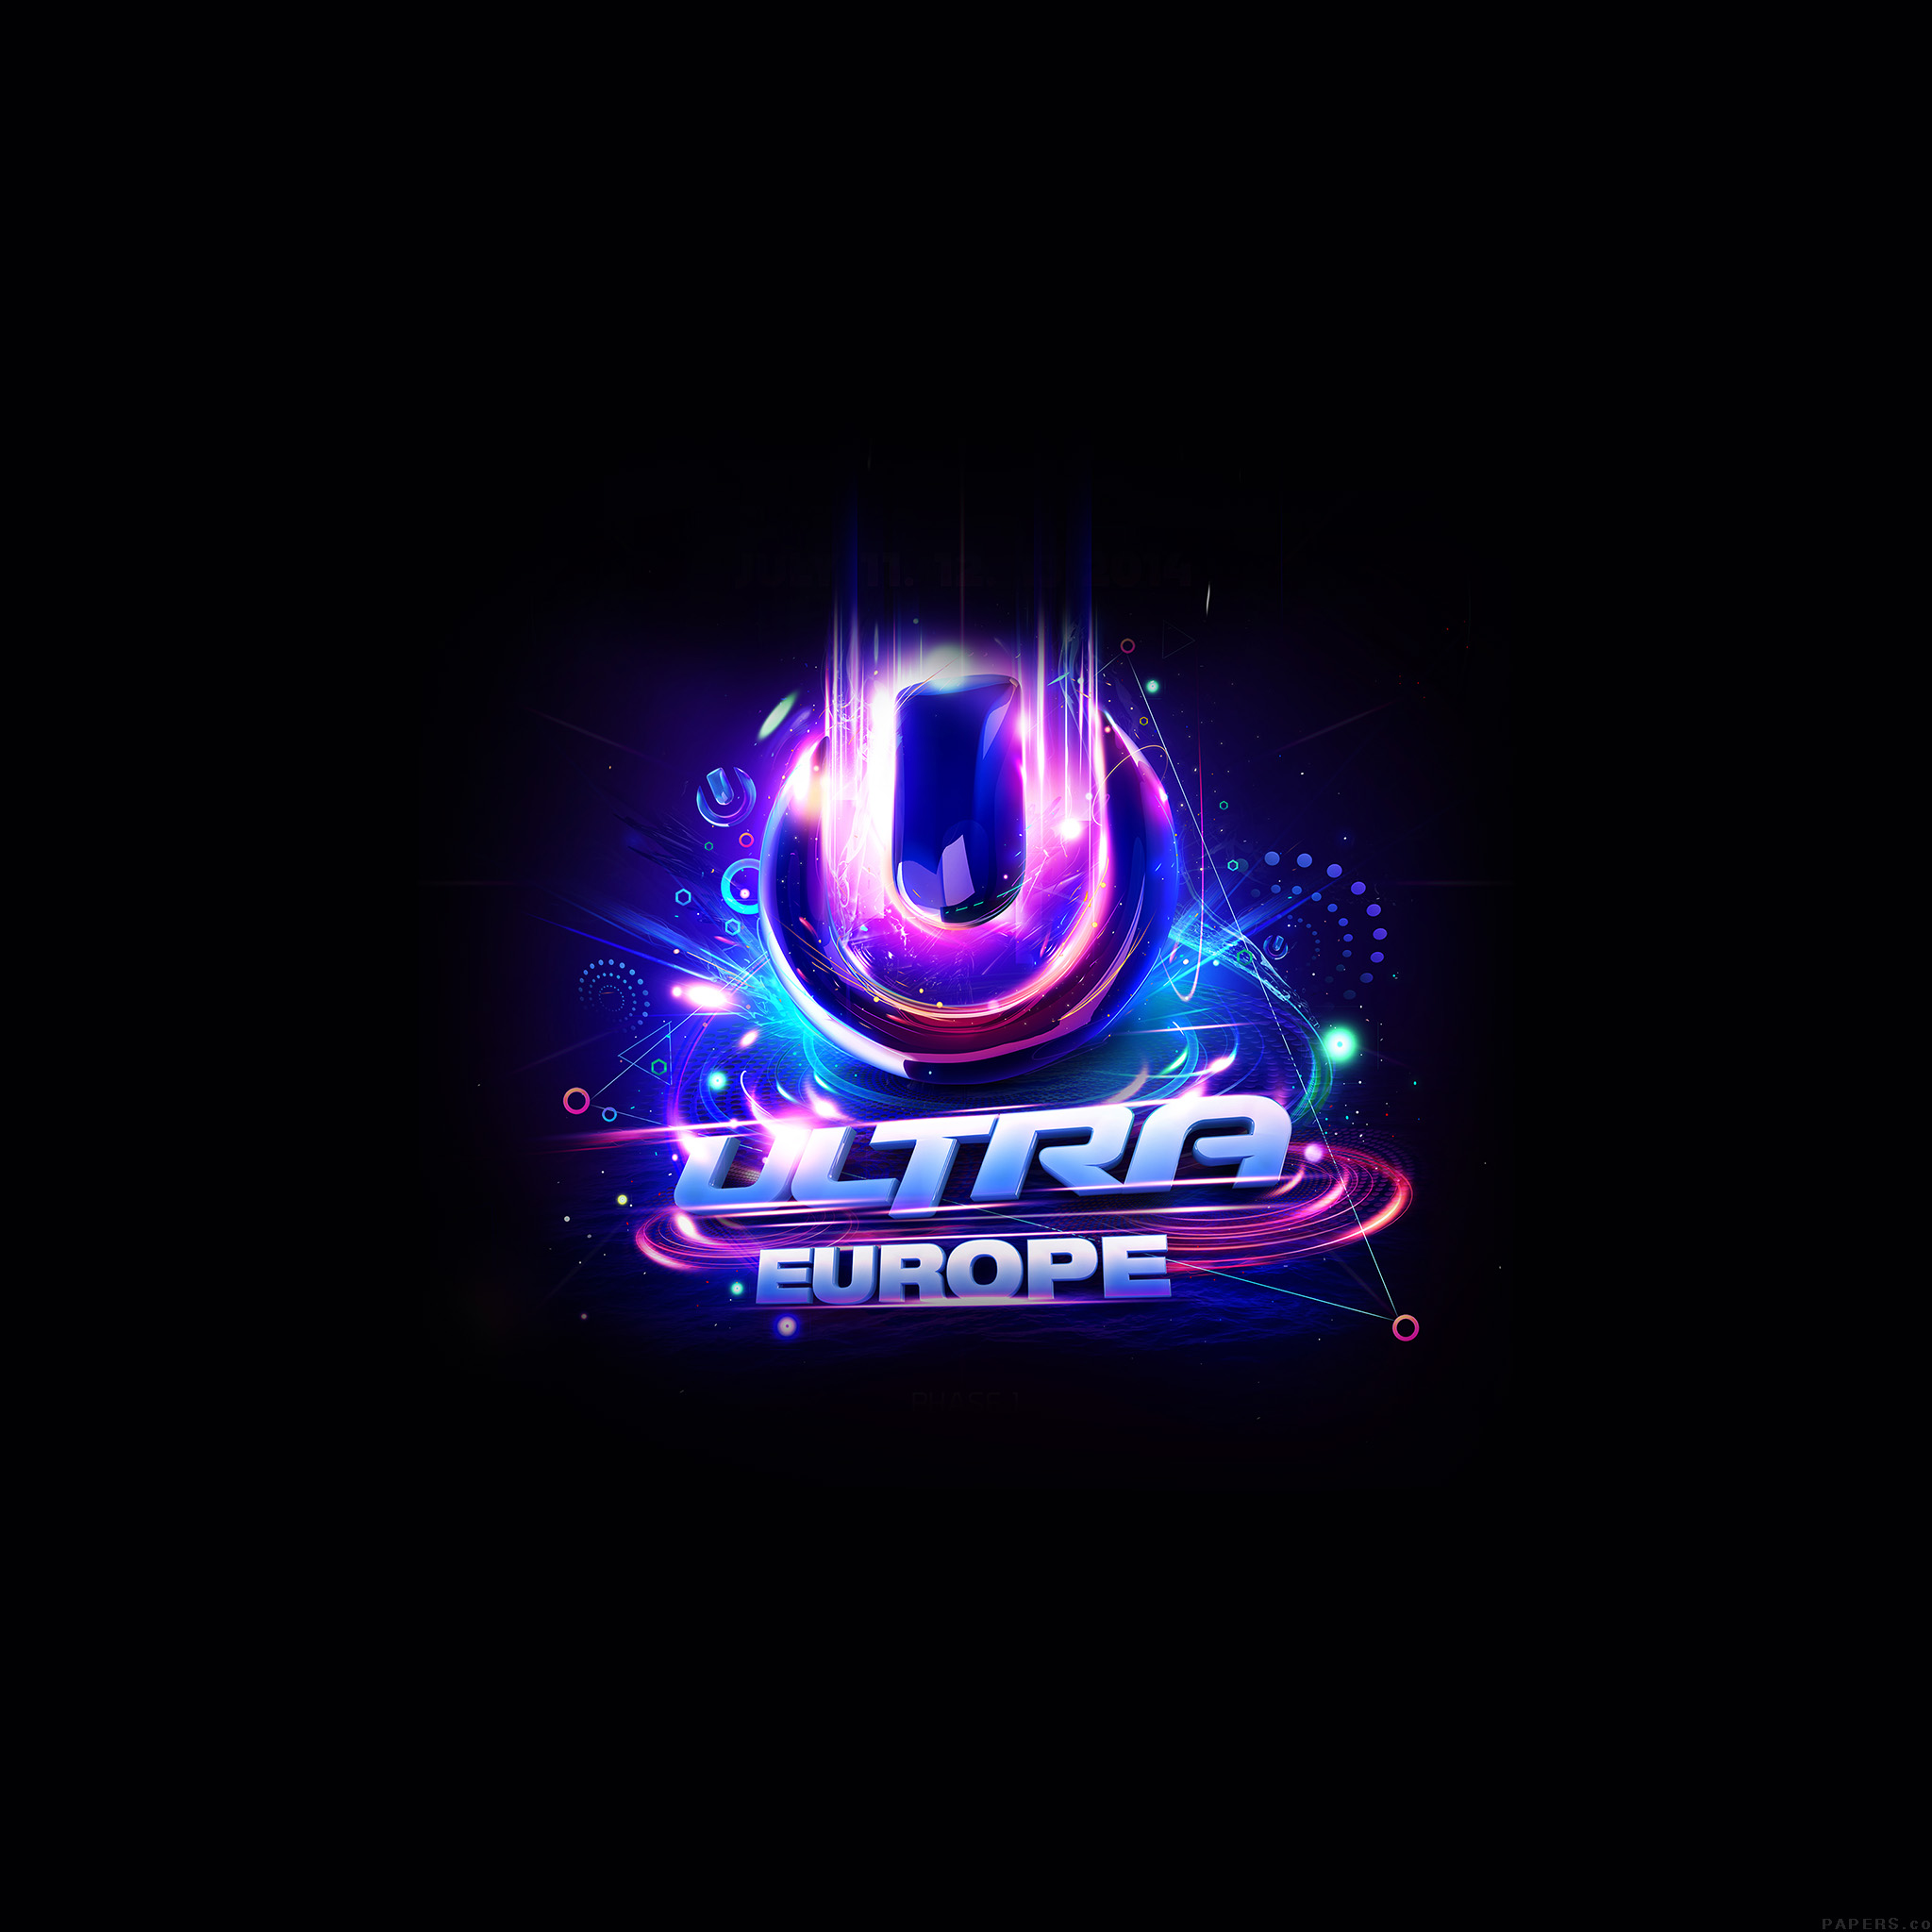 Al72-ultra-europe-art-poster-music-party